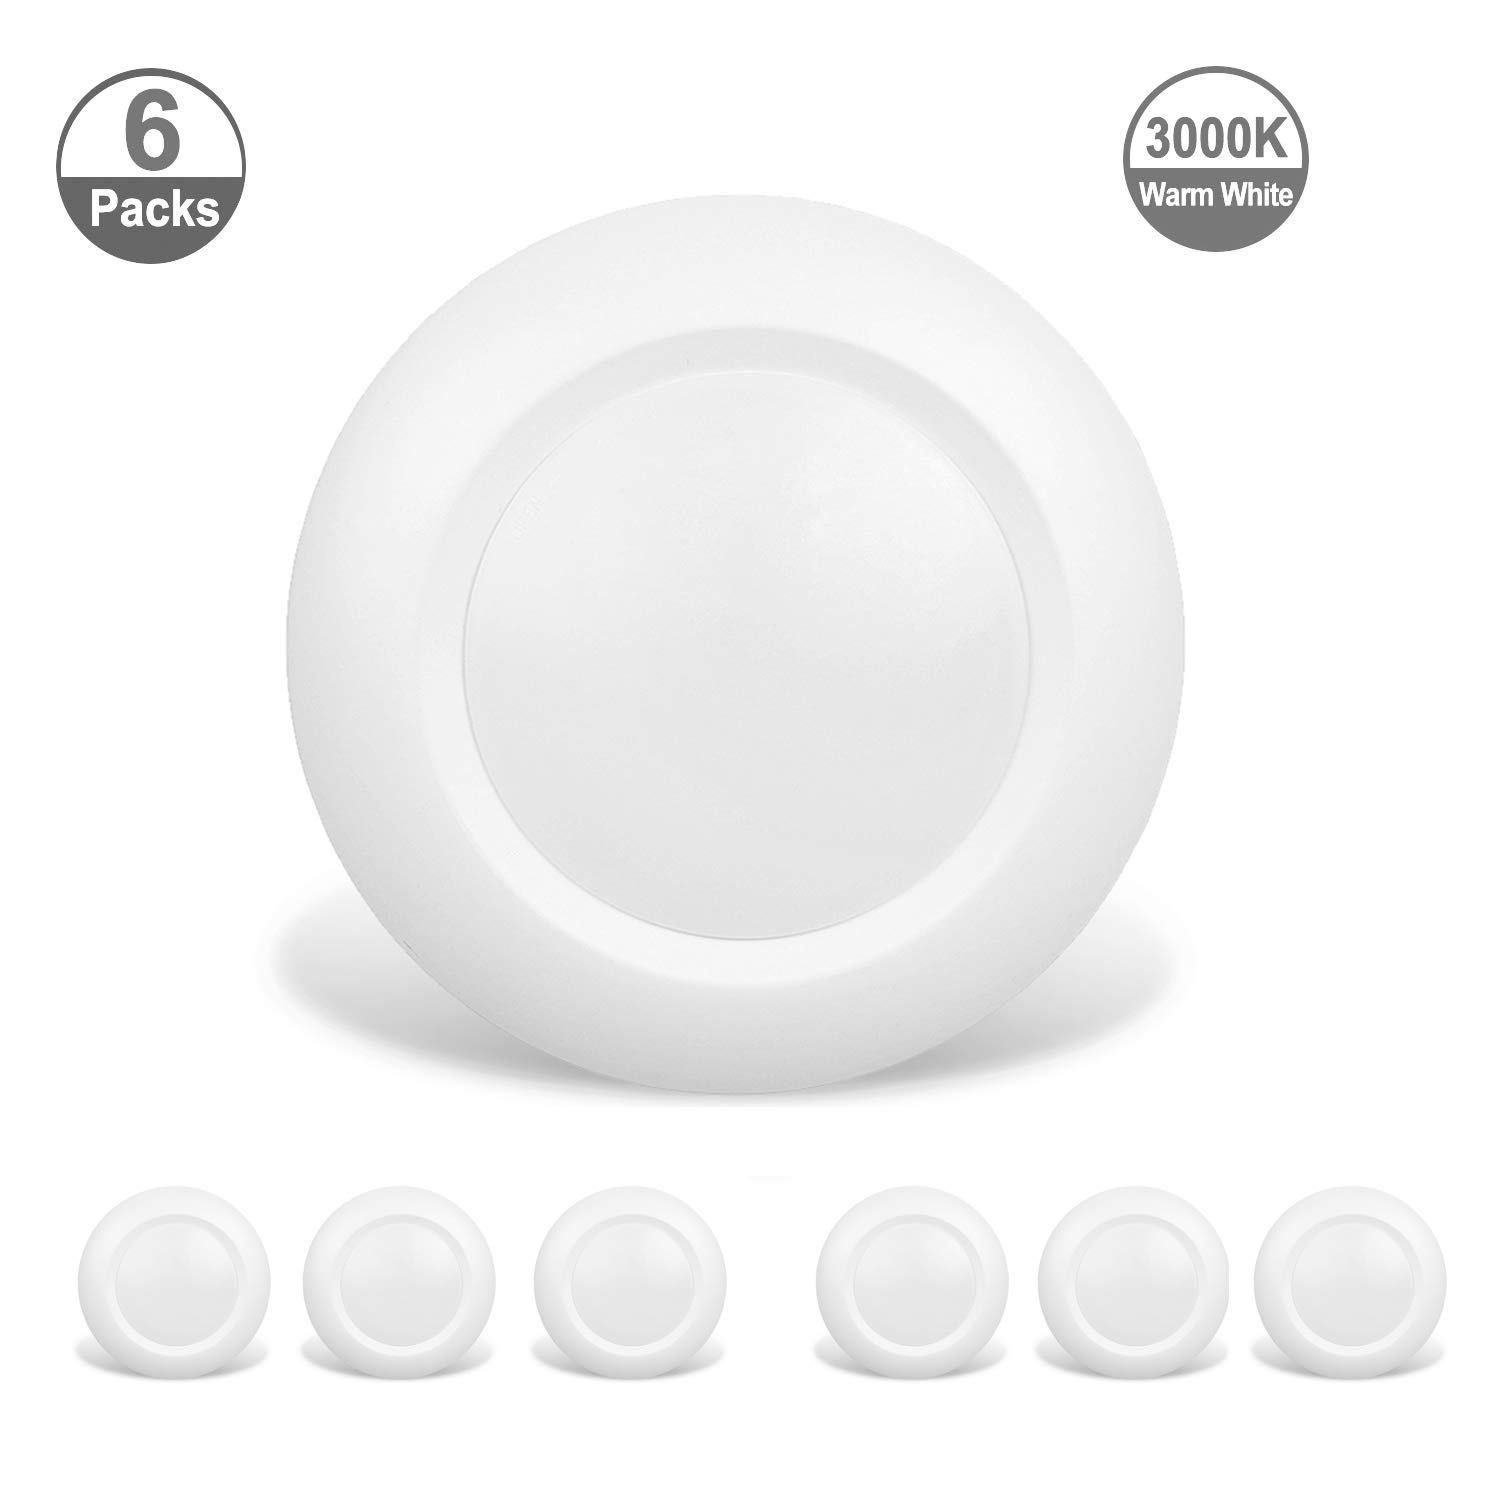 JULLISON 6 Packs 4 Inch LED Low Profile Recessed & Surface Mount Disk Light, Round, 10W, 600 Lumens, 3000K Warm White, CRI80, DOB Design, Dimmable, Energy Star, ETL Listed, White ... by JULLISON (Image #1)